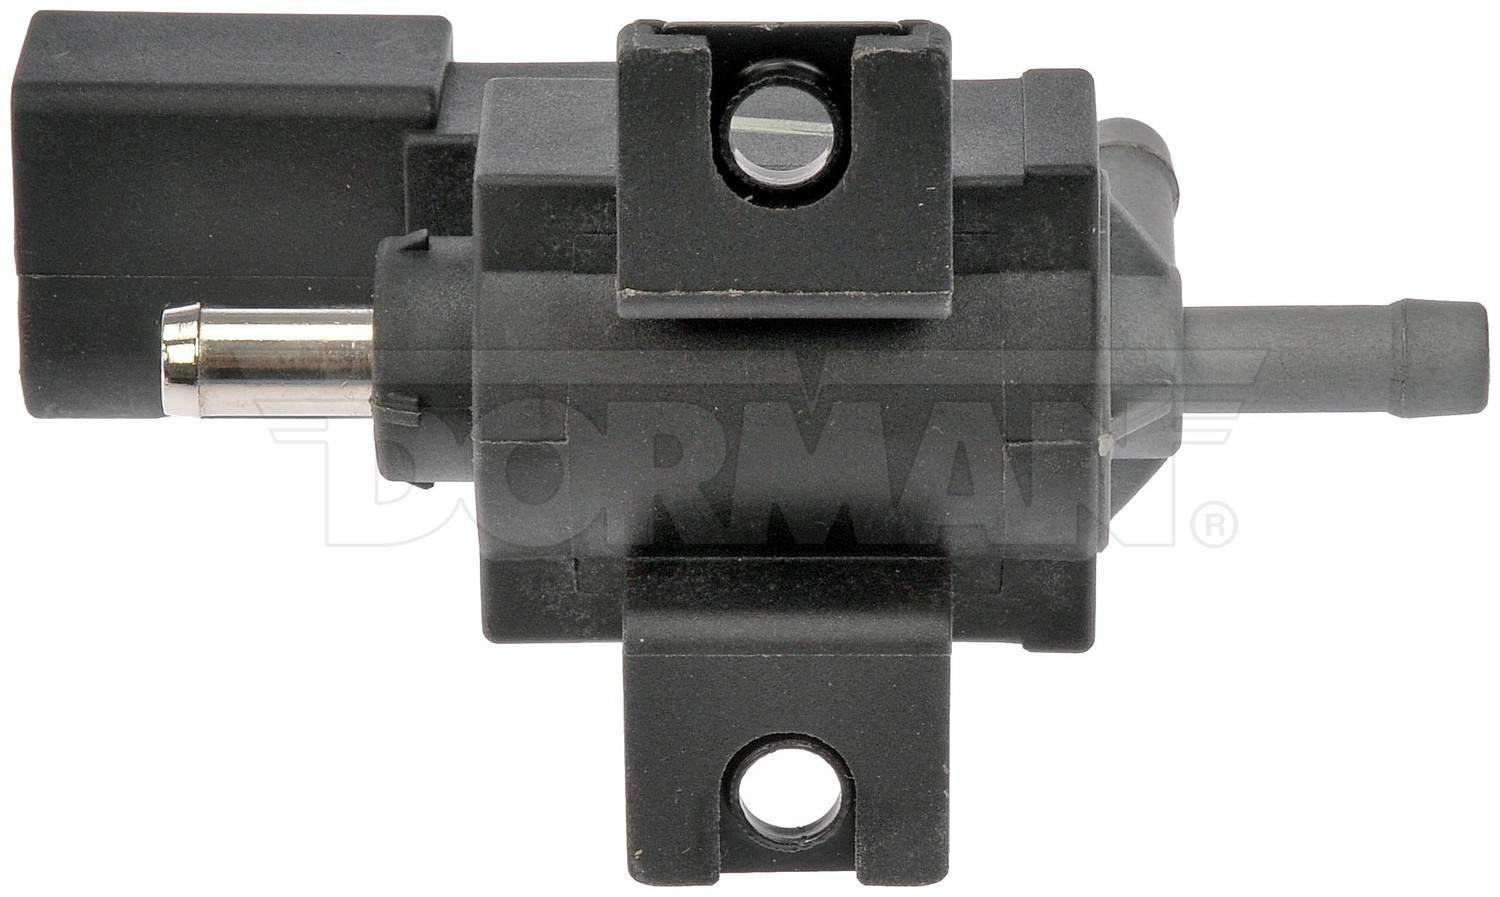 DORMAN OE SOLUTIONS - Turbocharger Boost Solenoid - DRE 667-101